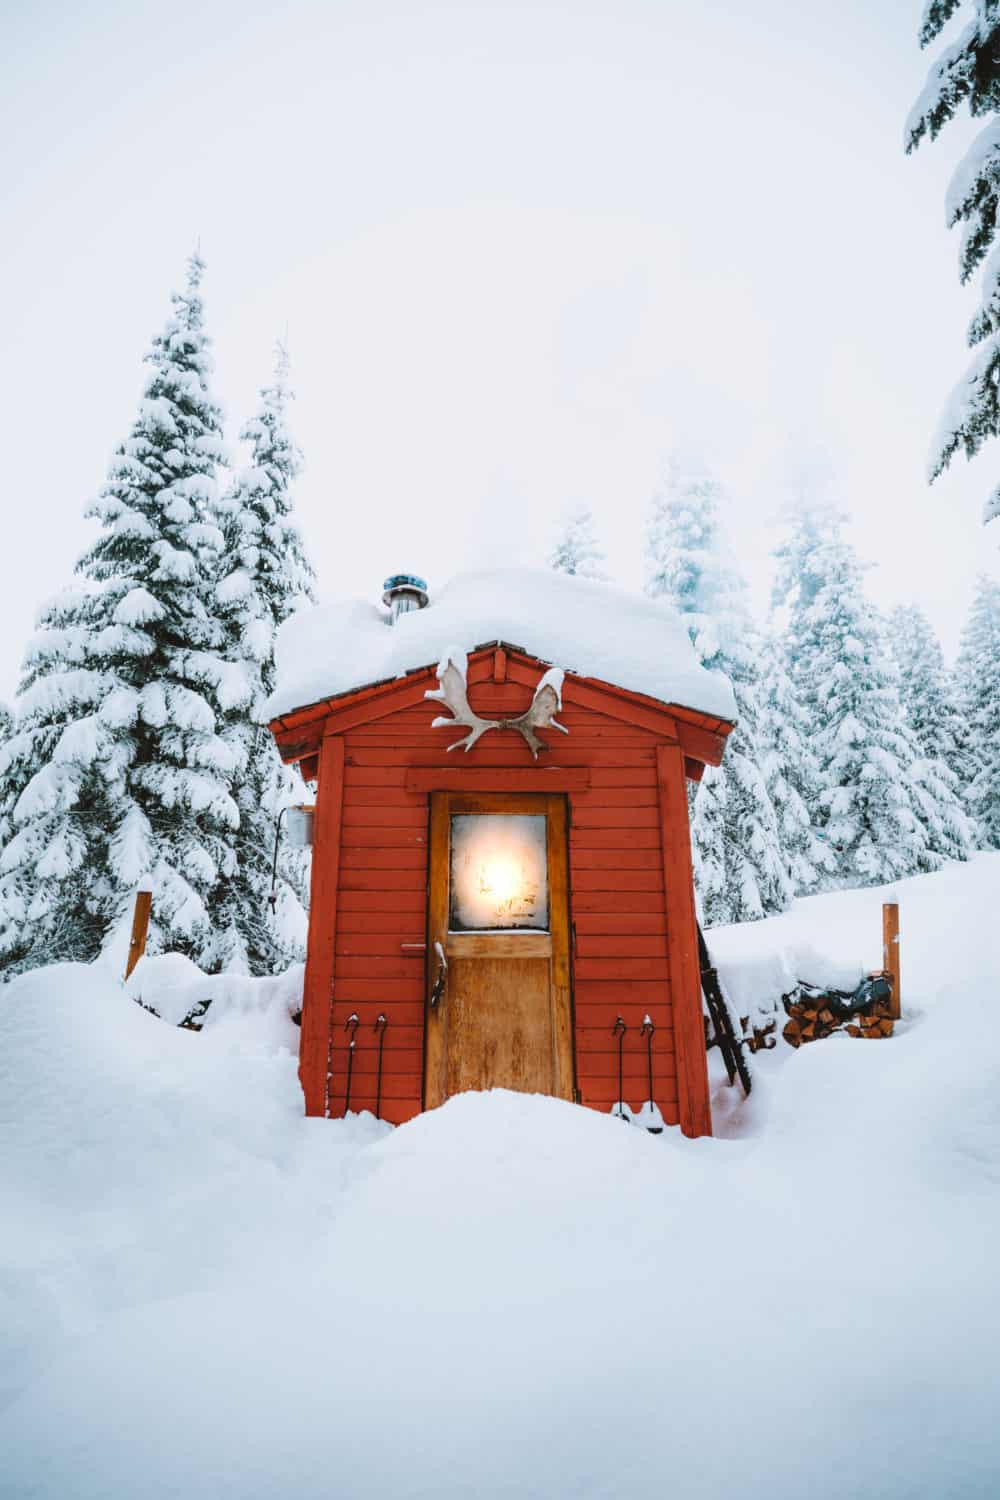 Sauna at Crystal Peak Lookout Idaho